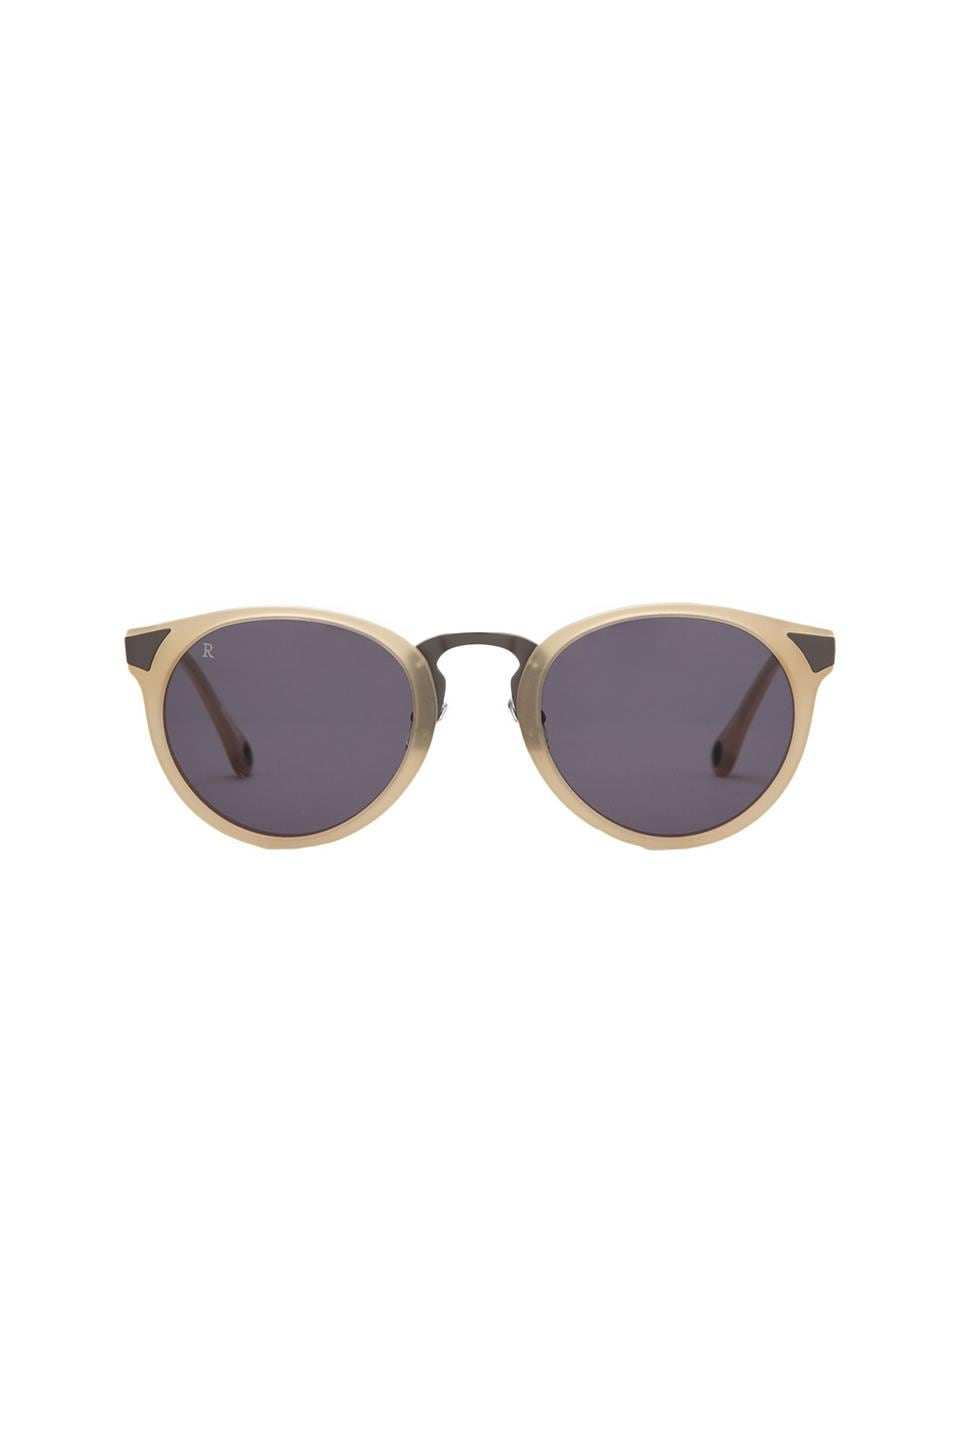 RAEN optics Nera Sunglasses in Ivory Matte